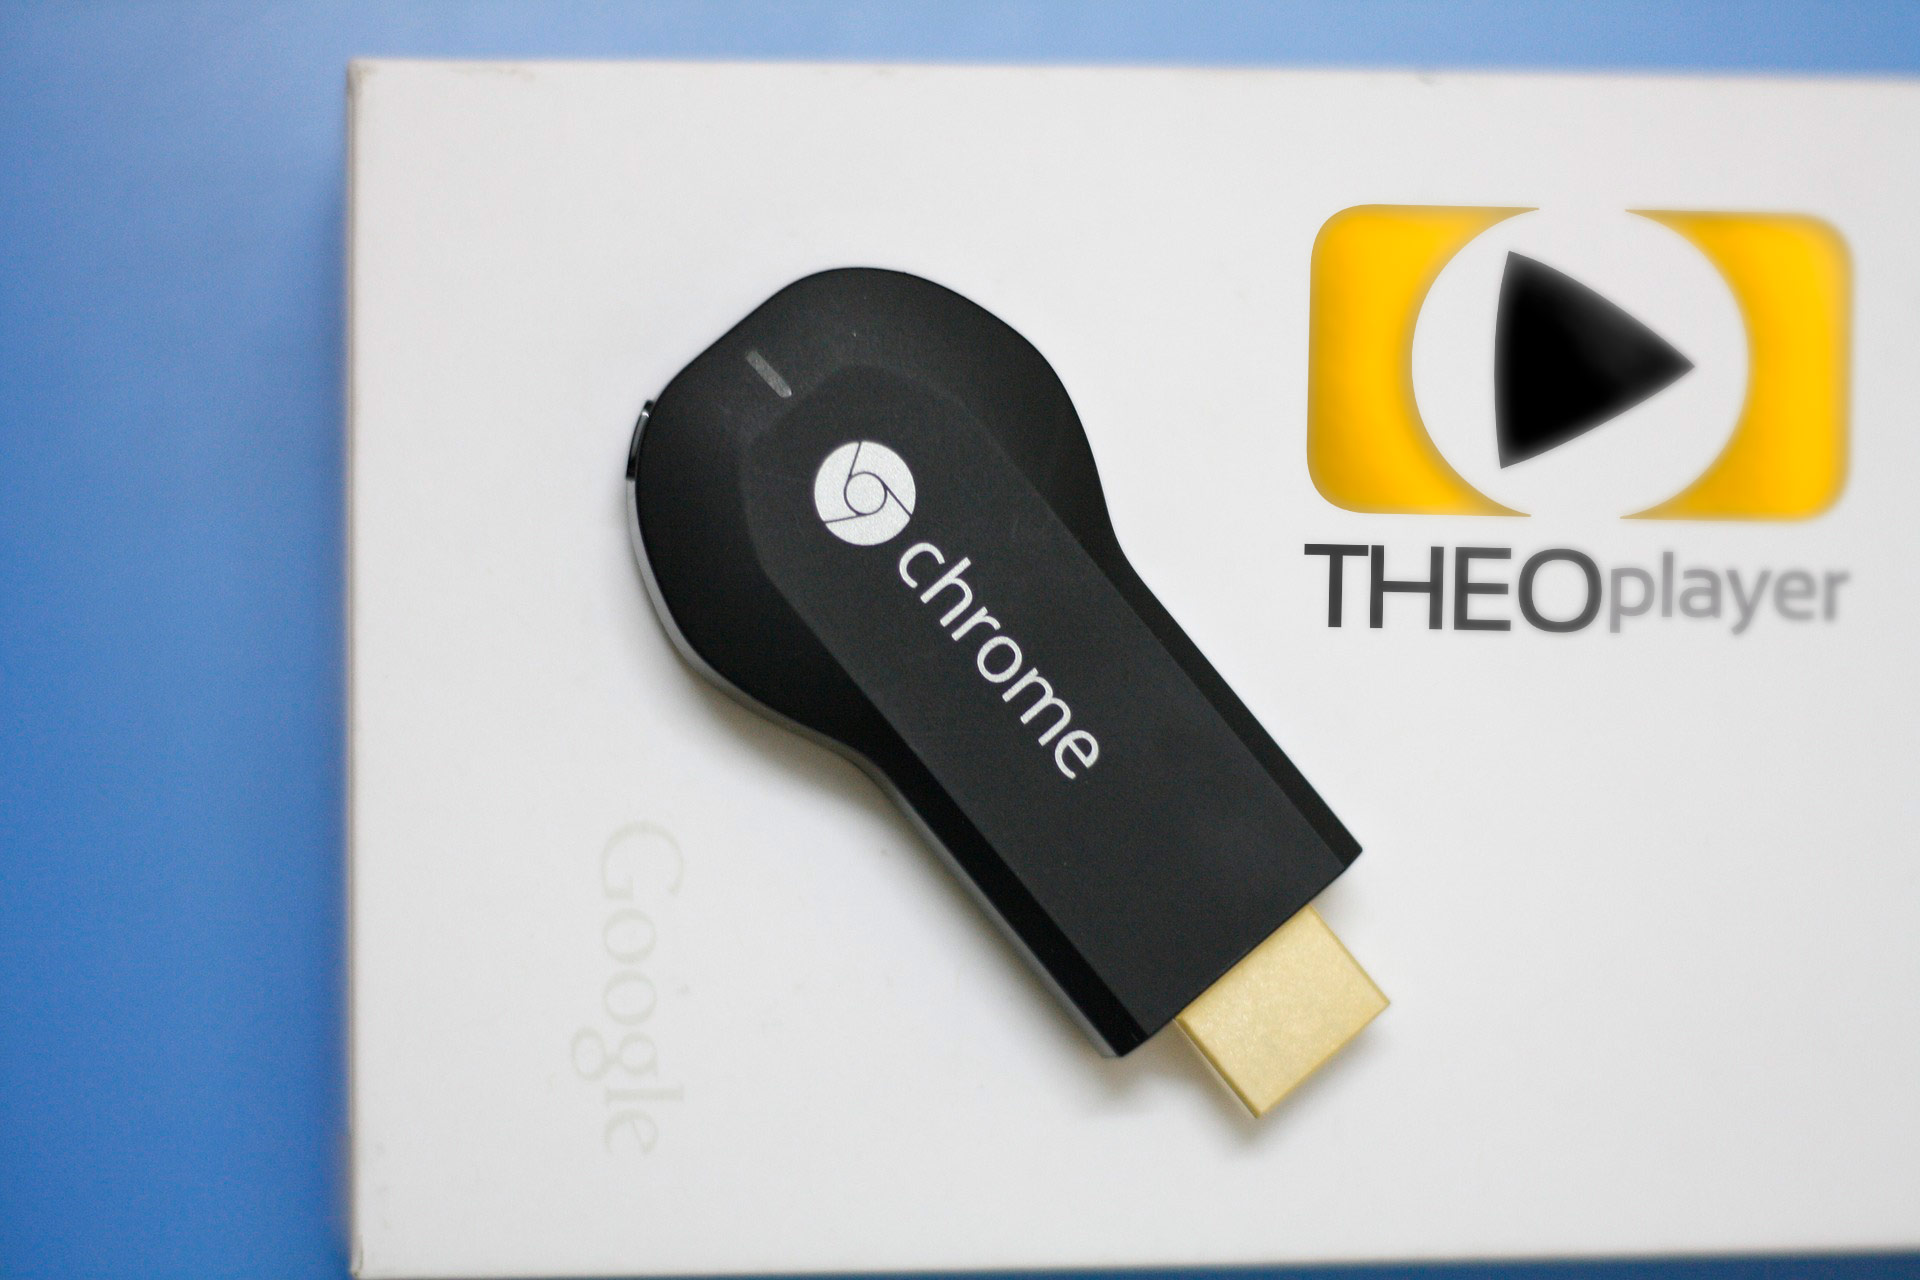 New Release: Chromecast support, Thumbnails, Cross-Platform Support Matrix Extended